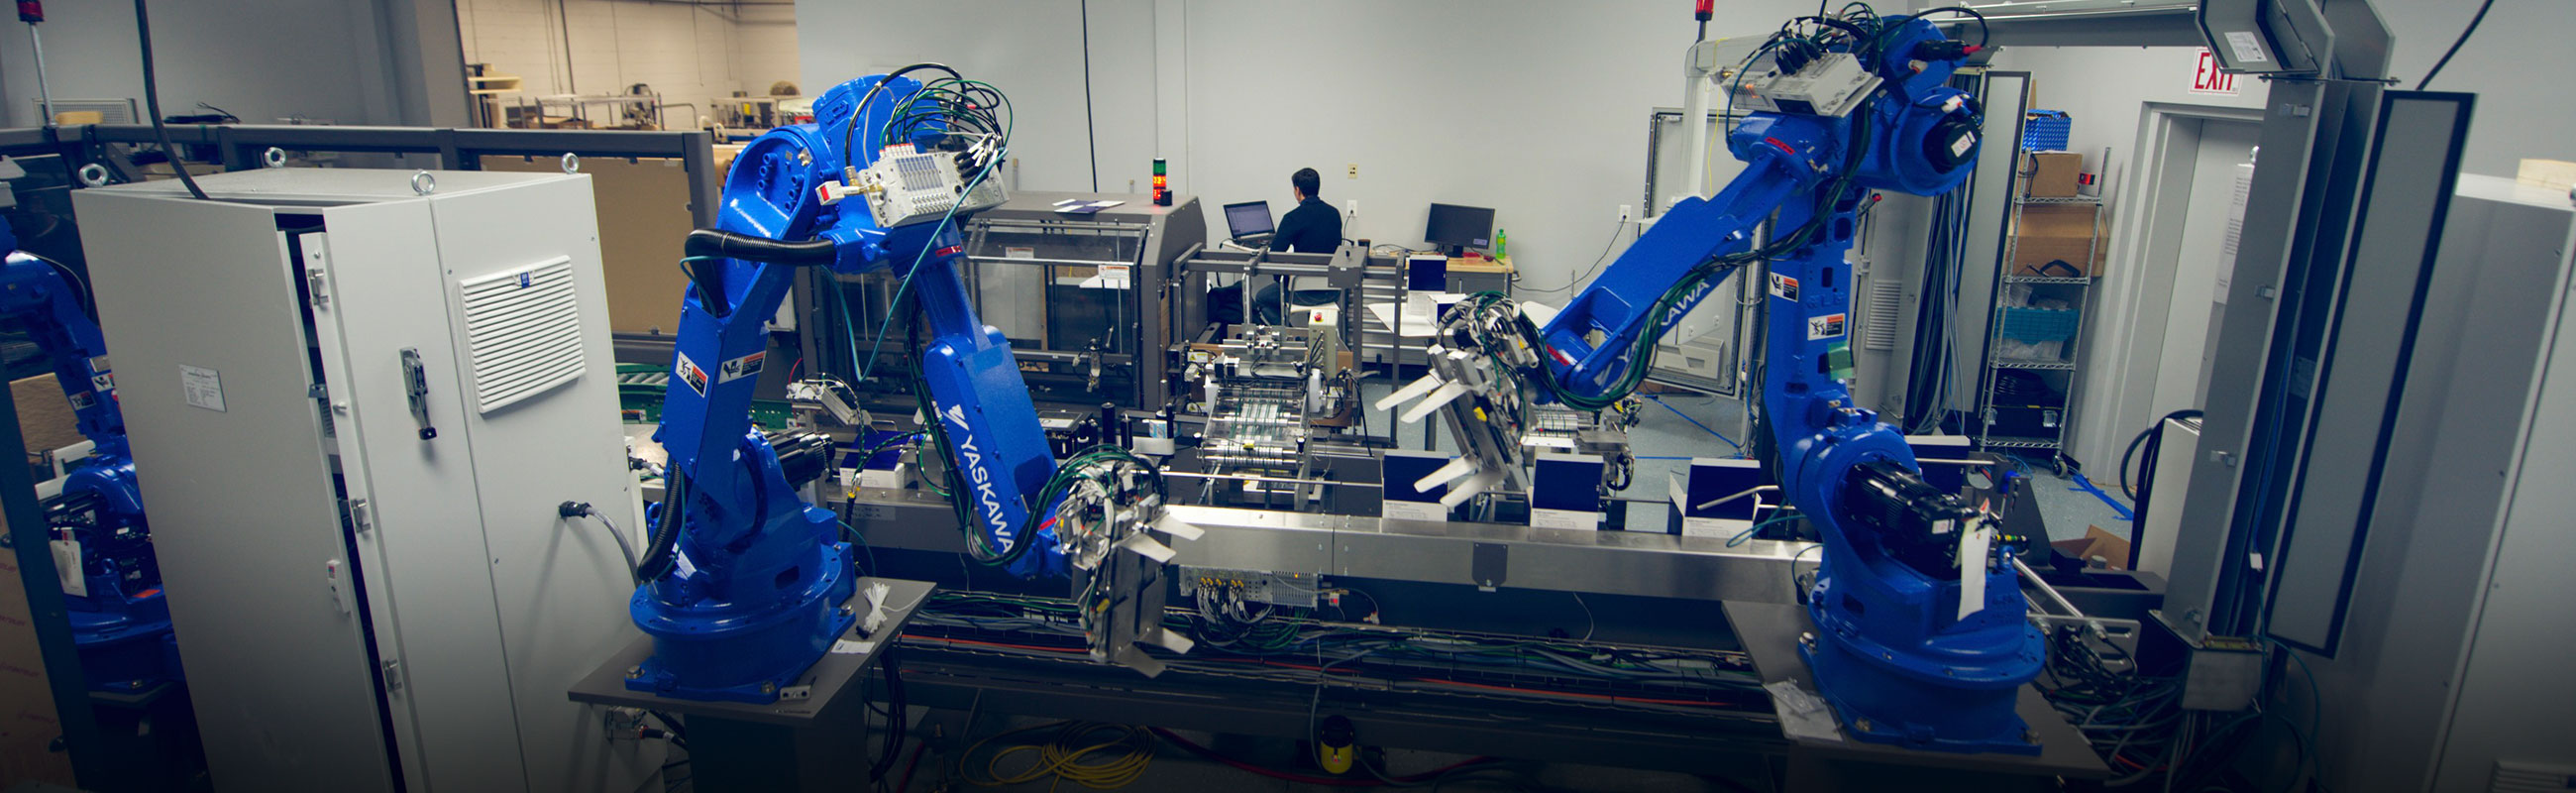 Yaskawa packaging robotics design automtion